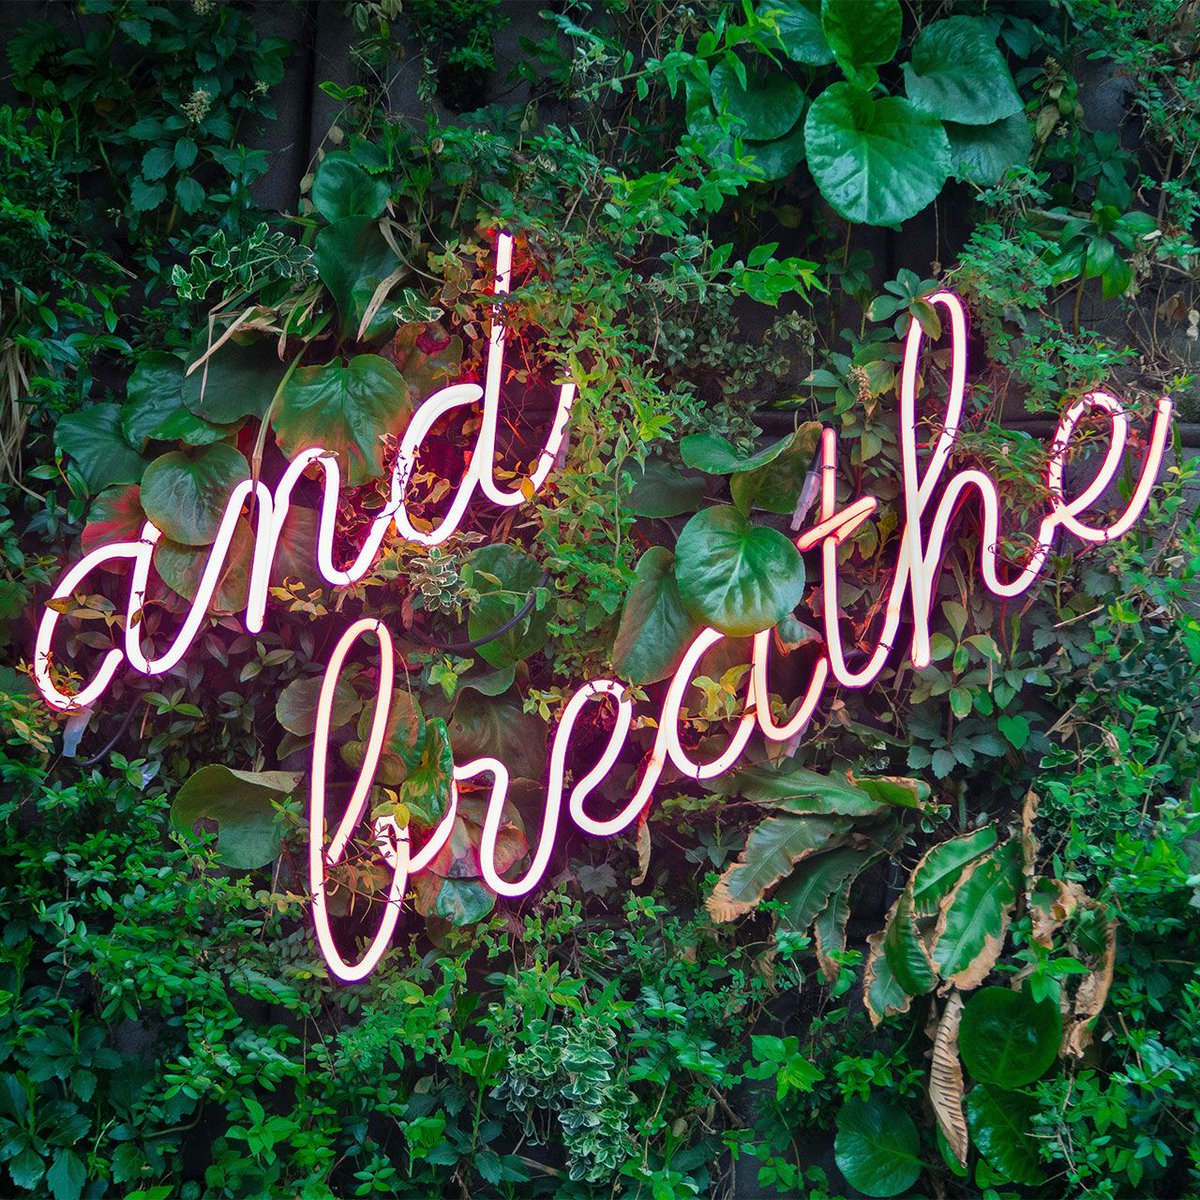 Give yourself permission to take time to breathe, to live life and to be present.   #justbreathe #shinethroughtherain #shine #foundation #newmarket  #canada #north #charity #nonprofit #illness #funding  #donations #help #patients #health #sickness  #recovery #happiness